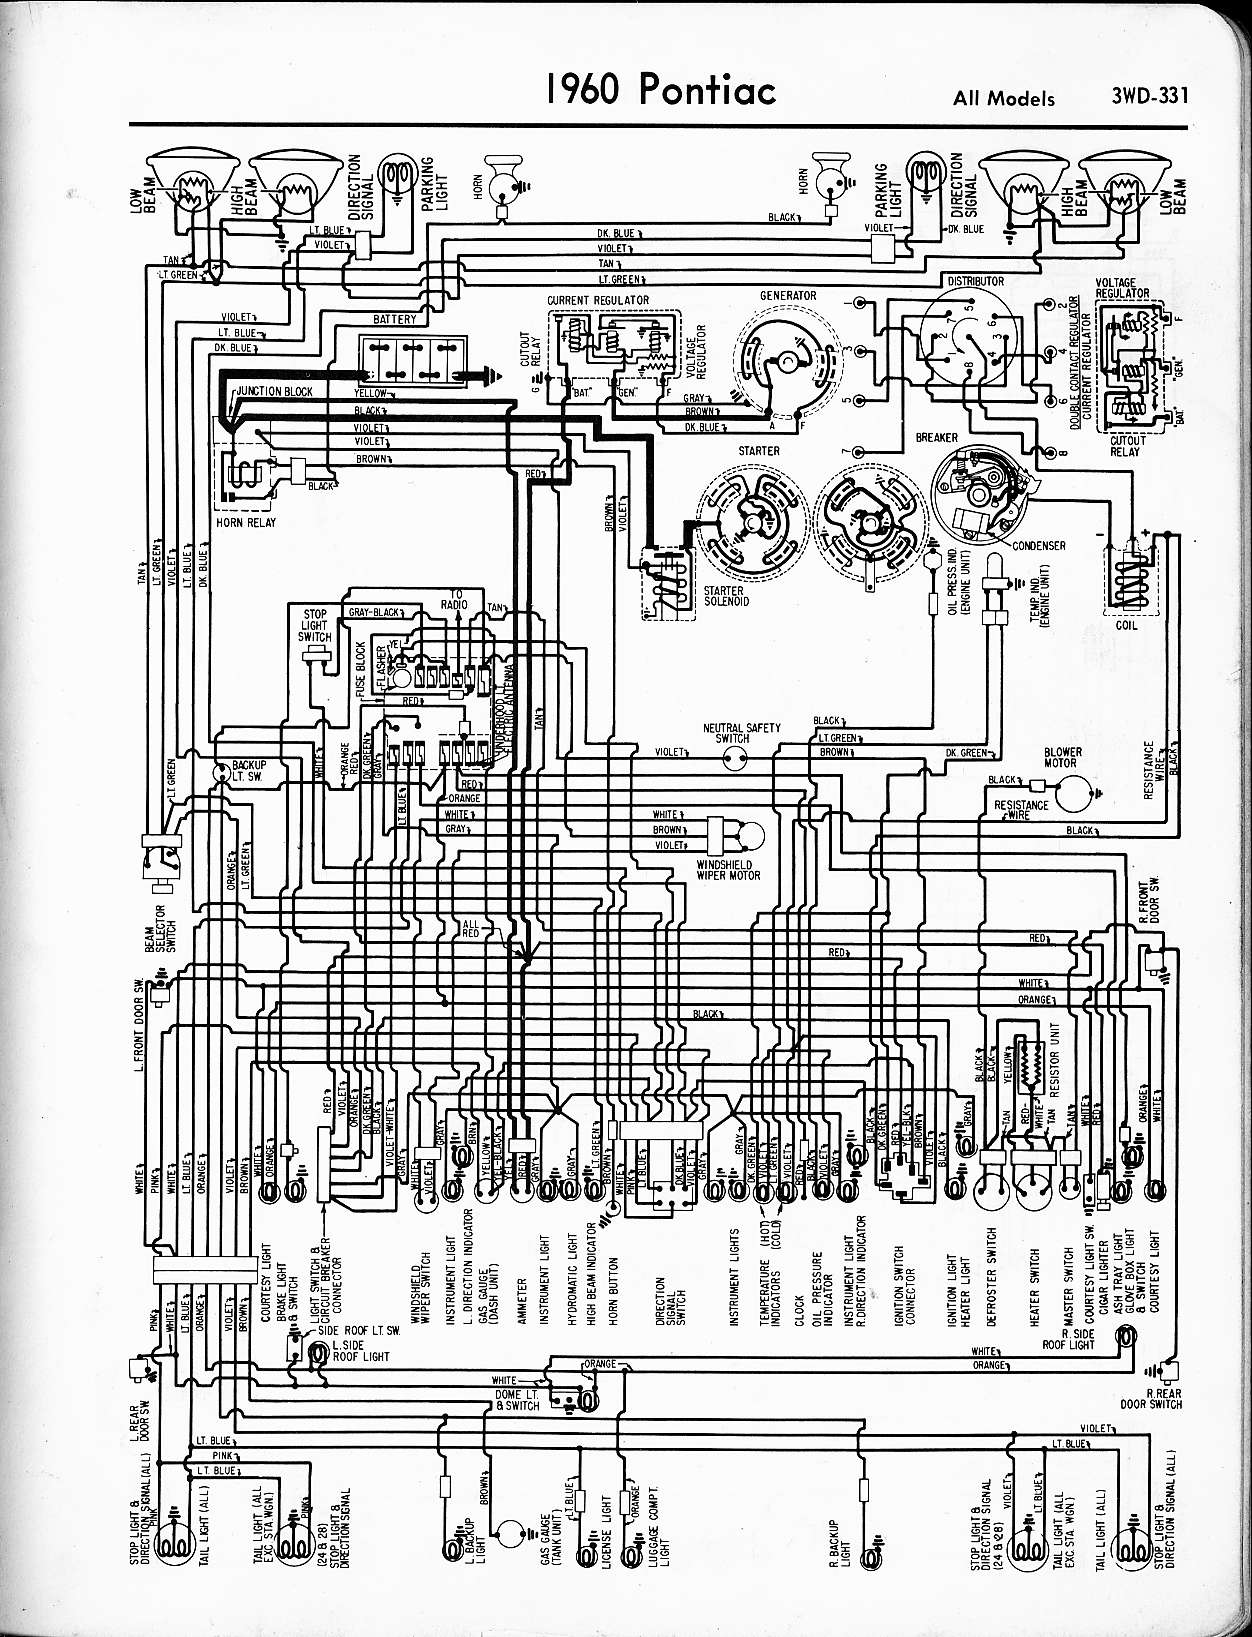 1967 Gto Wiring Diagram Experts Of Ford Racing Tach 66 Pontiac Detailed Schematics Rh Mrskindsclass Com